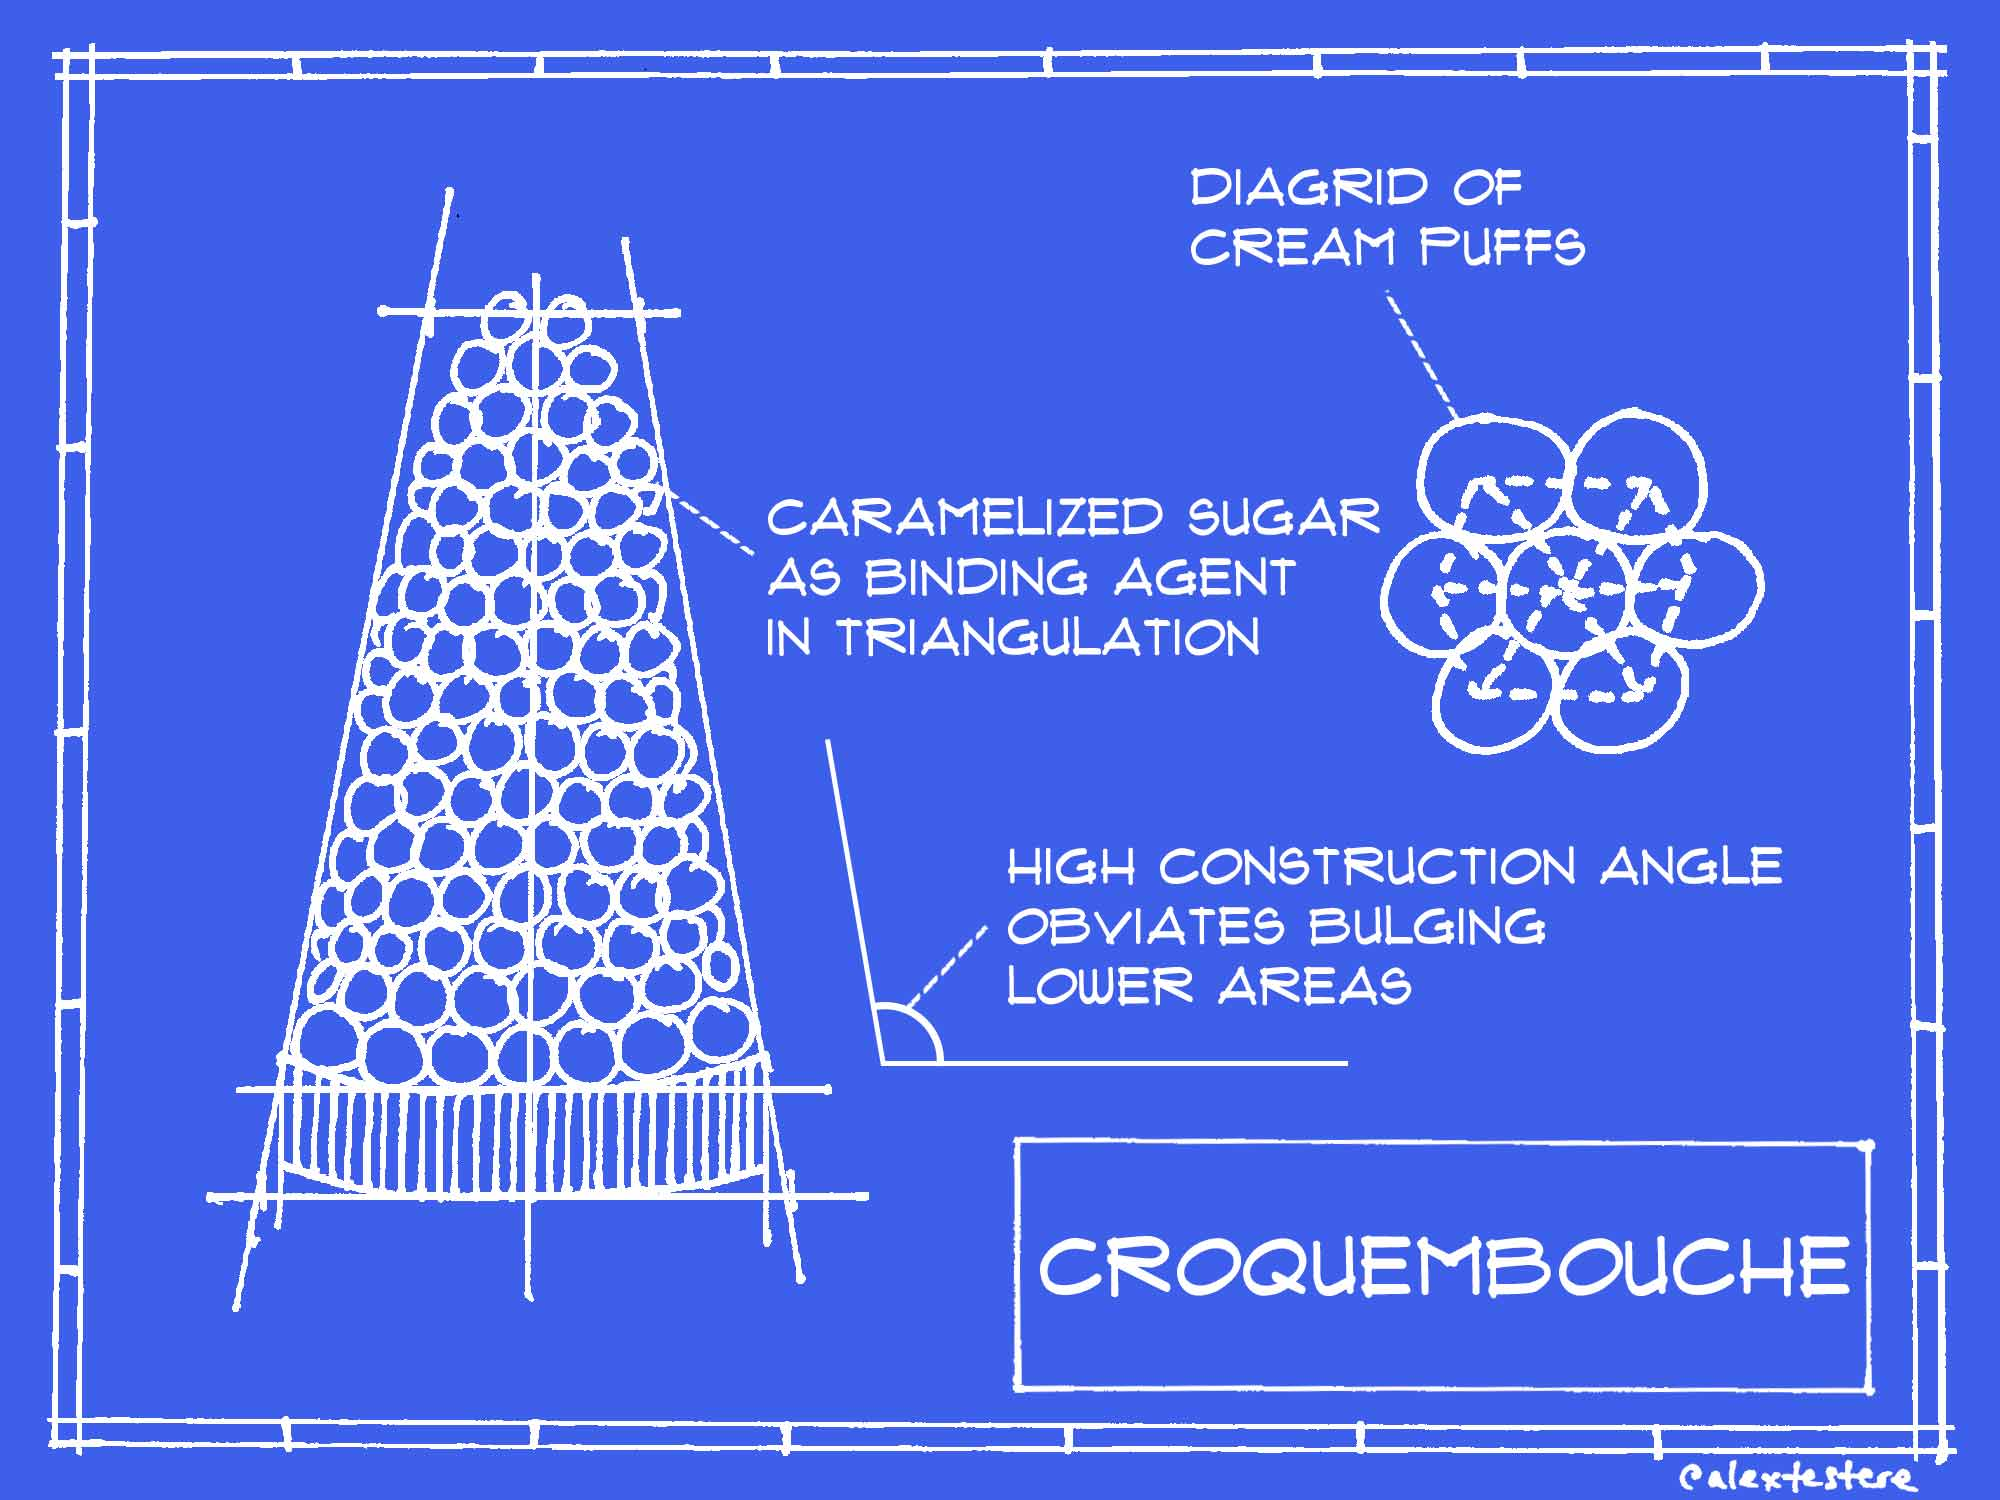 The Structural Soundness of Your Favorite Desserts, According to Architects